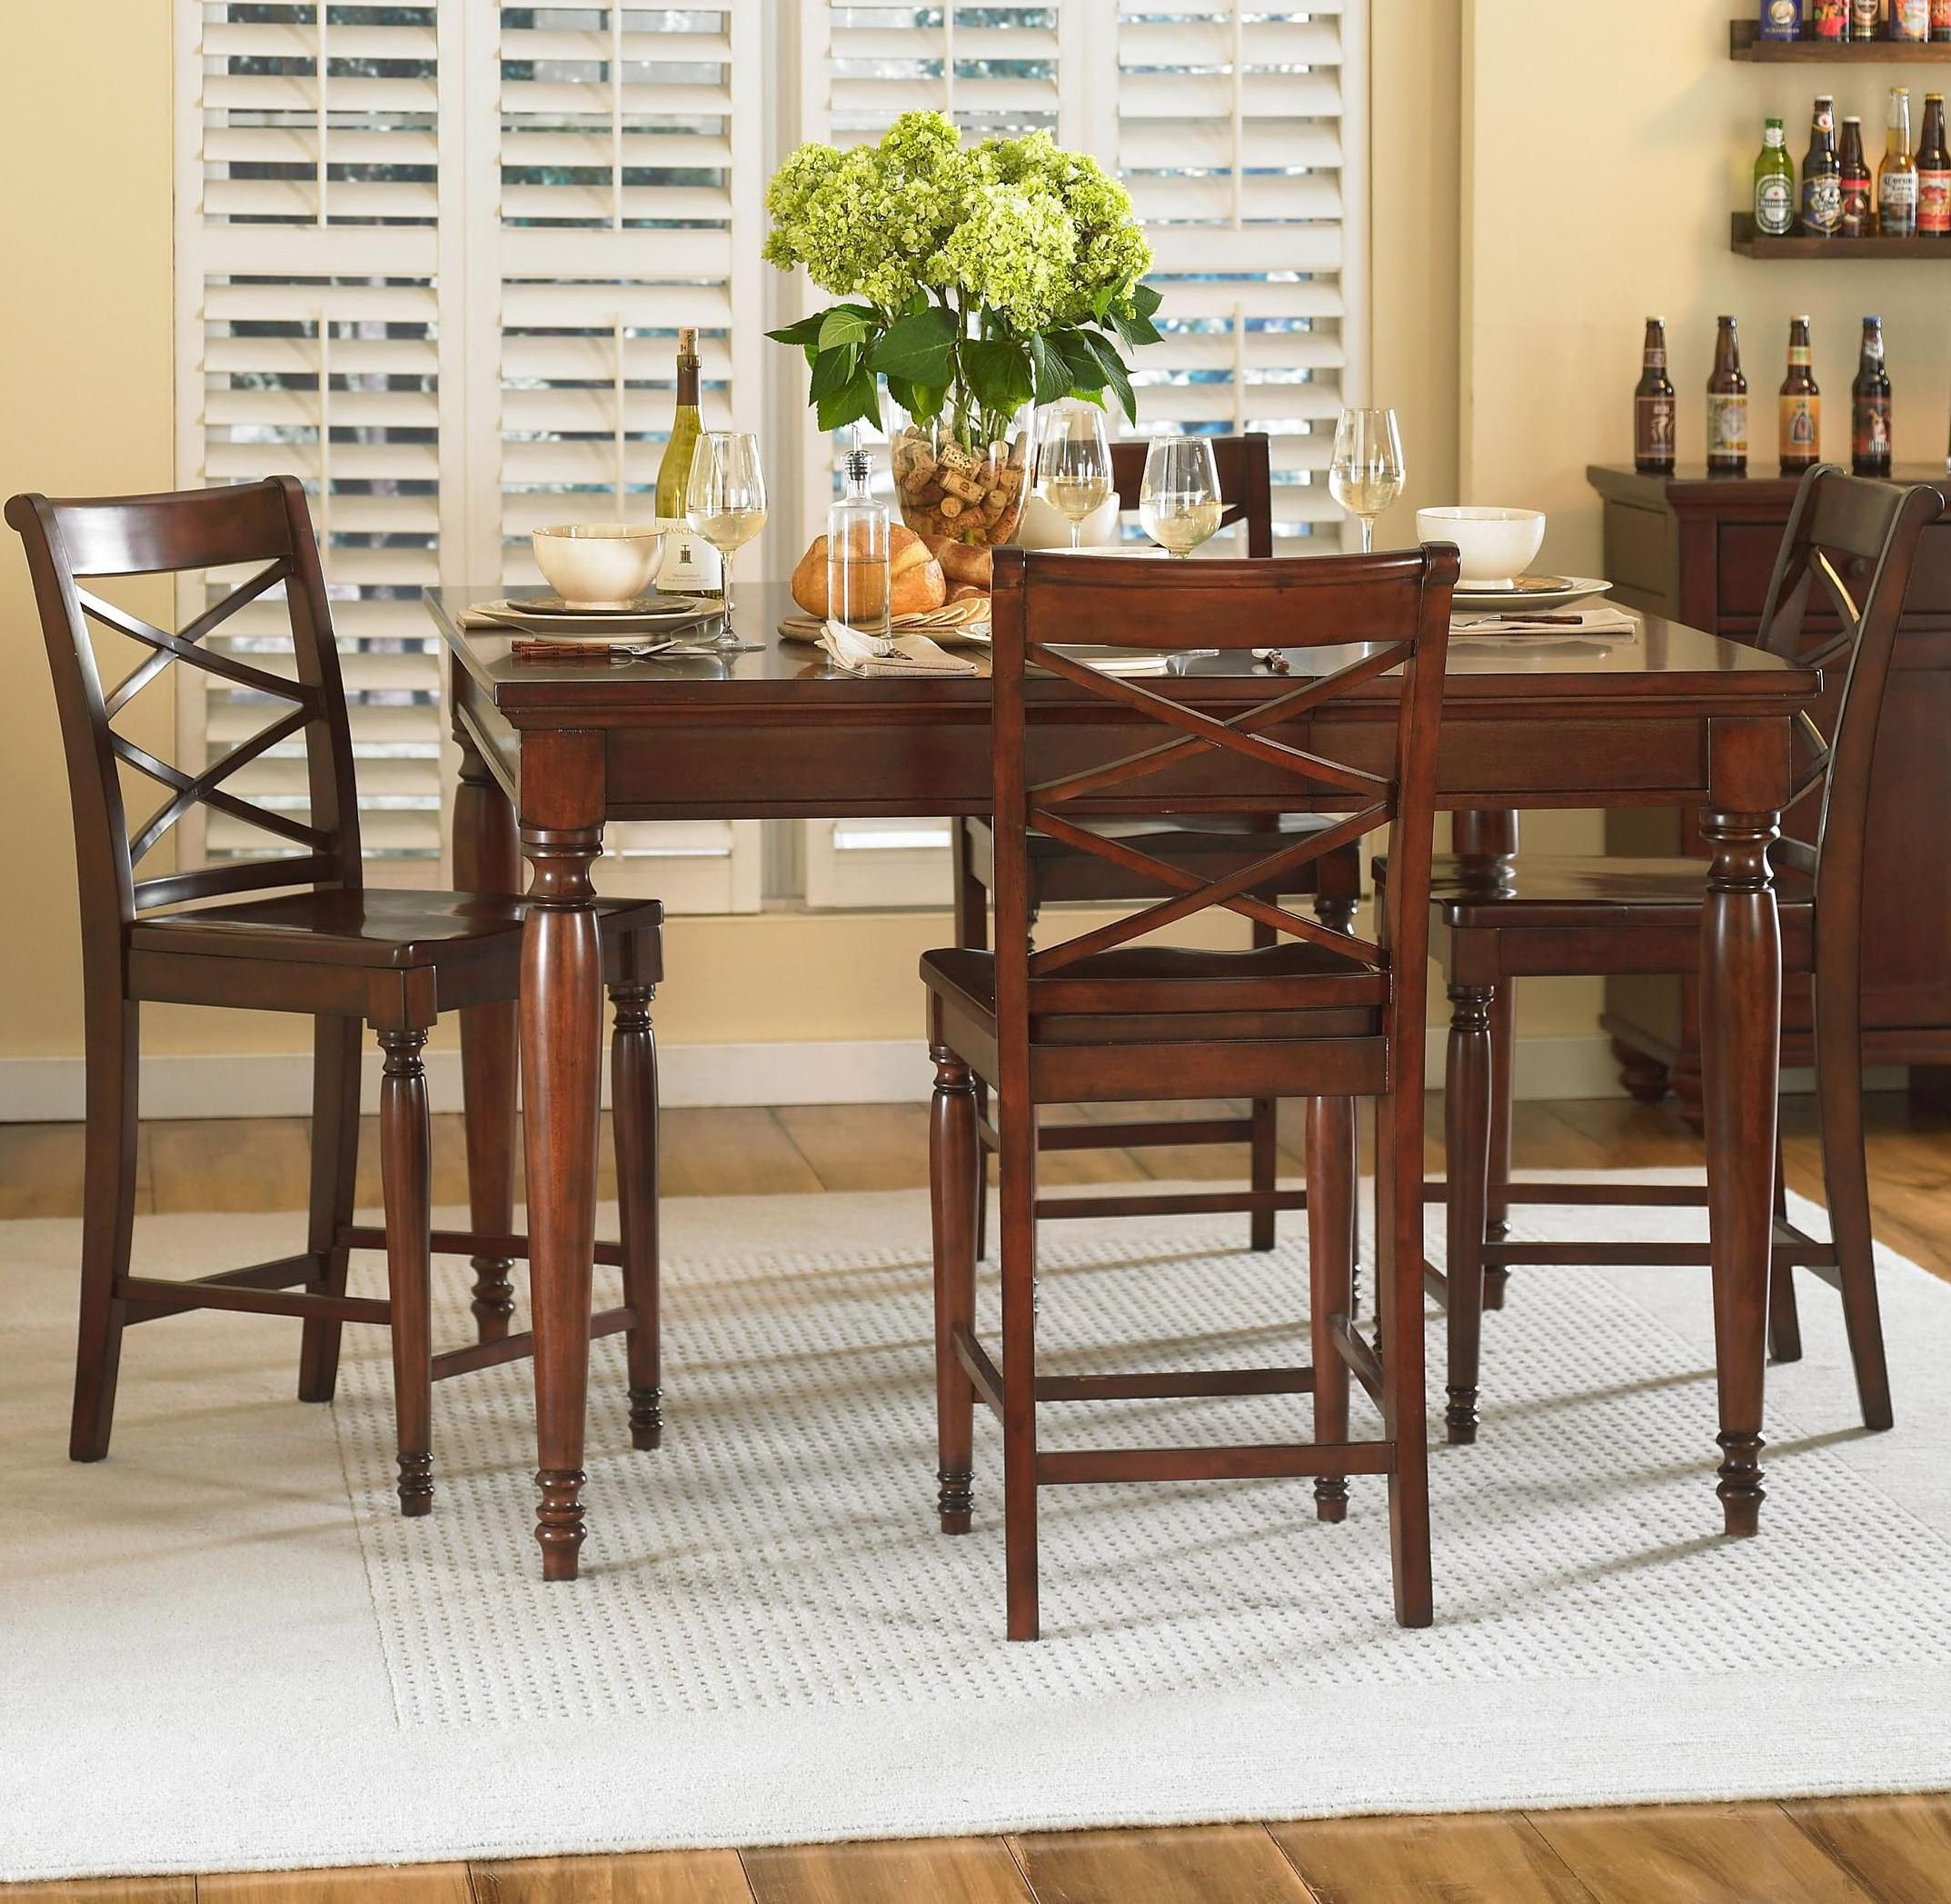 Clinton Counter Height Table  Delicious Dining At Morris Home Inspiration Aspen Home Dining Room Furniture Design Decoration